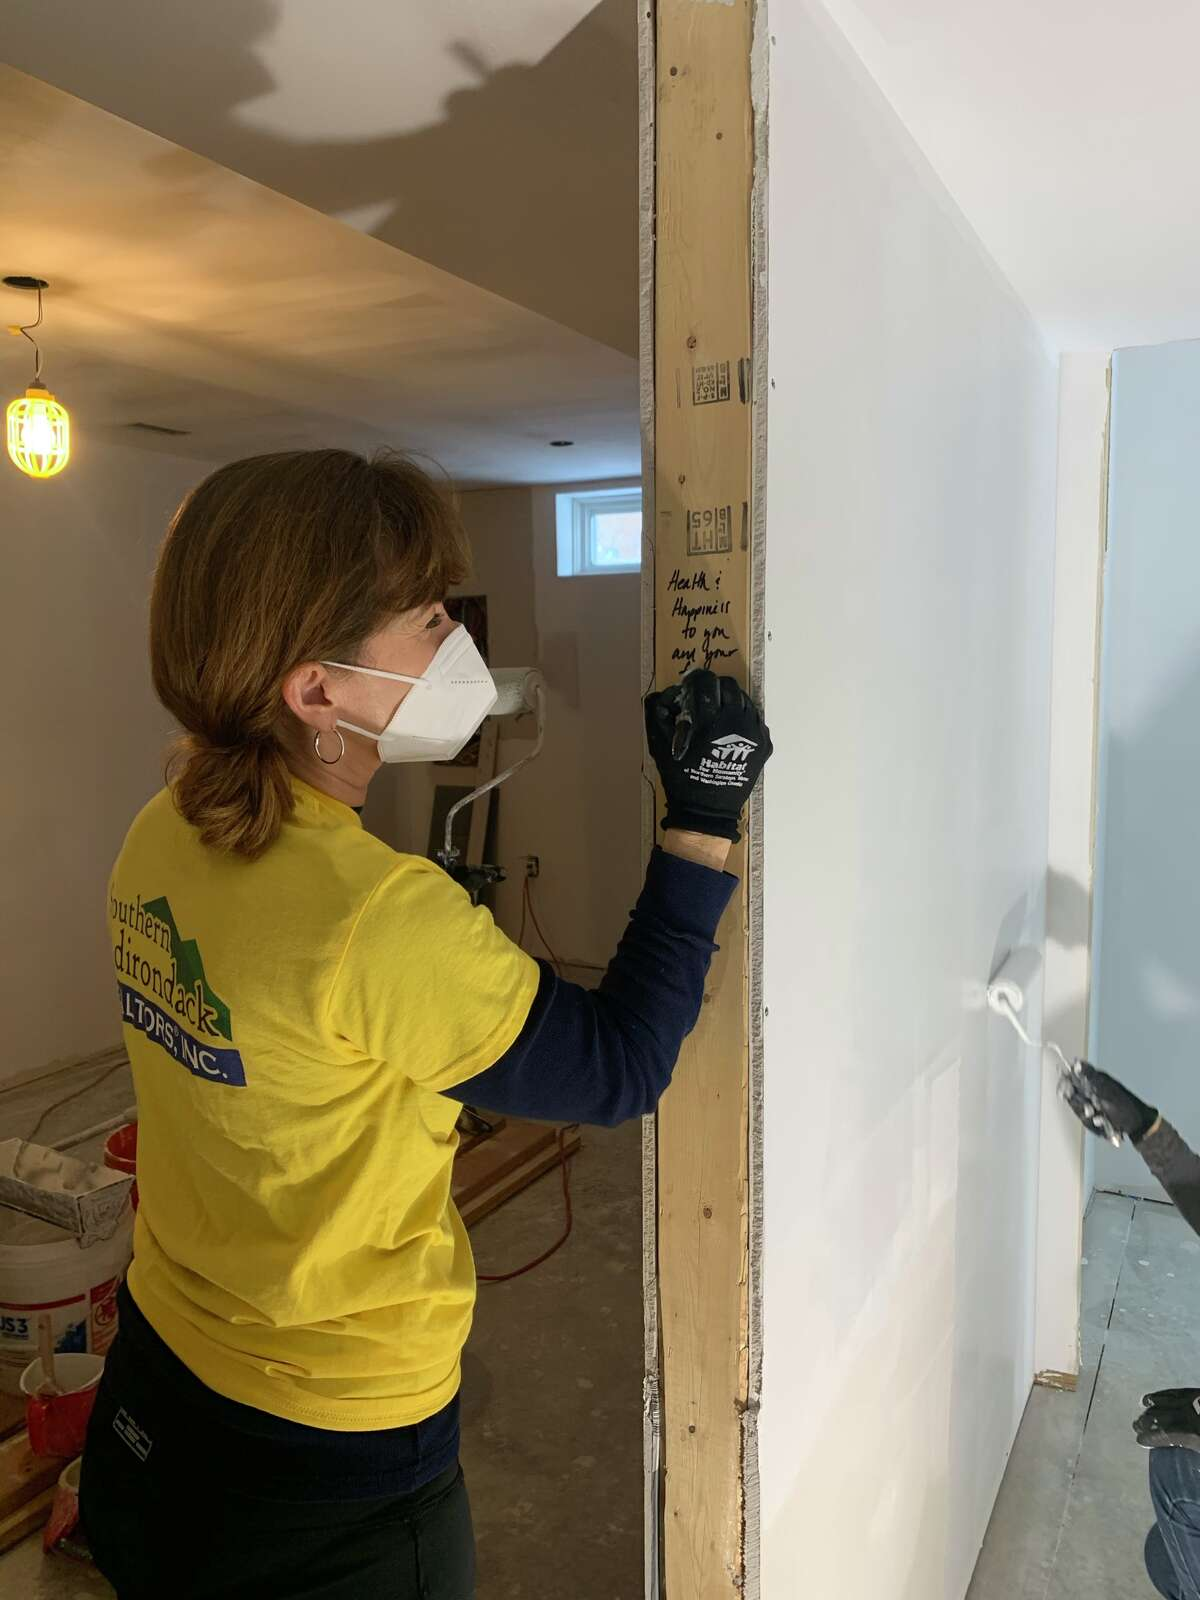 Local Realtors and industry partners participated in their first Habitat for Humanity project of 2021 last week as a continuation of the SAR's commitment to the community.